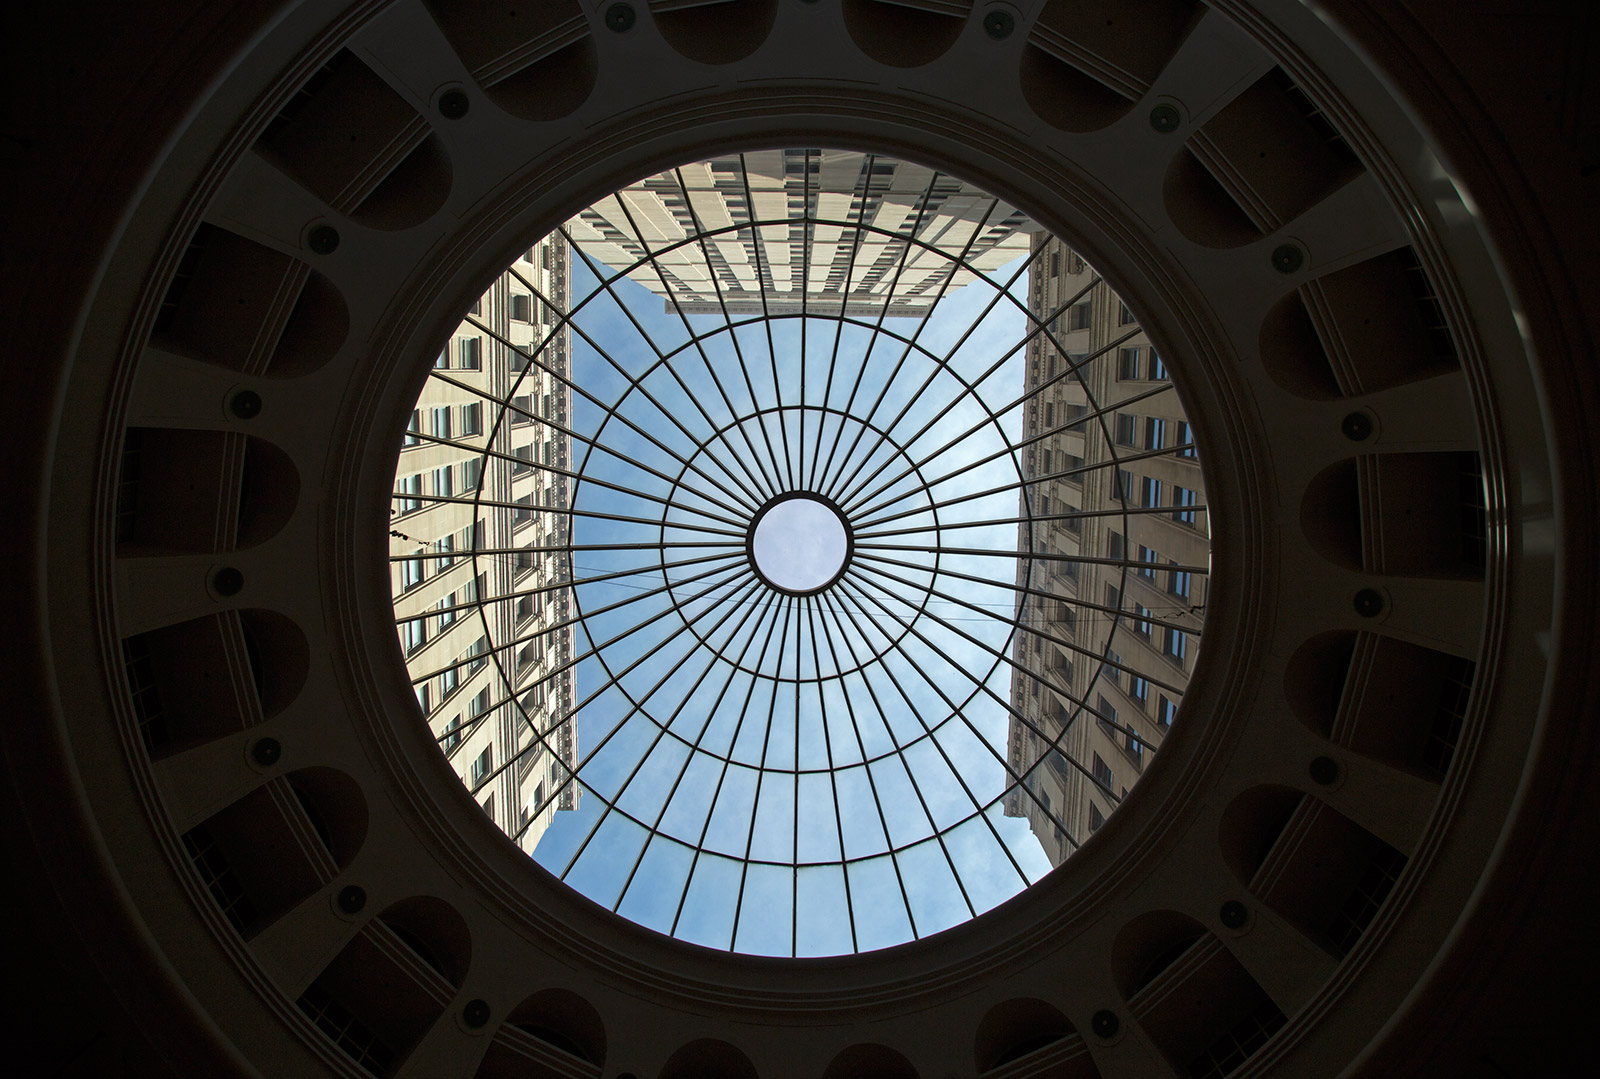 20140725. Cleveland's Tower City Center skylight.